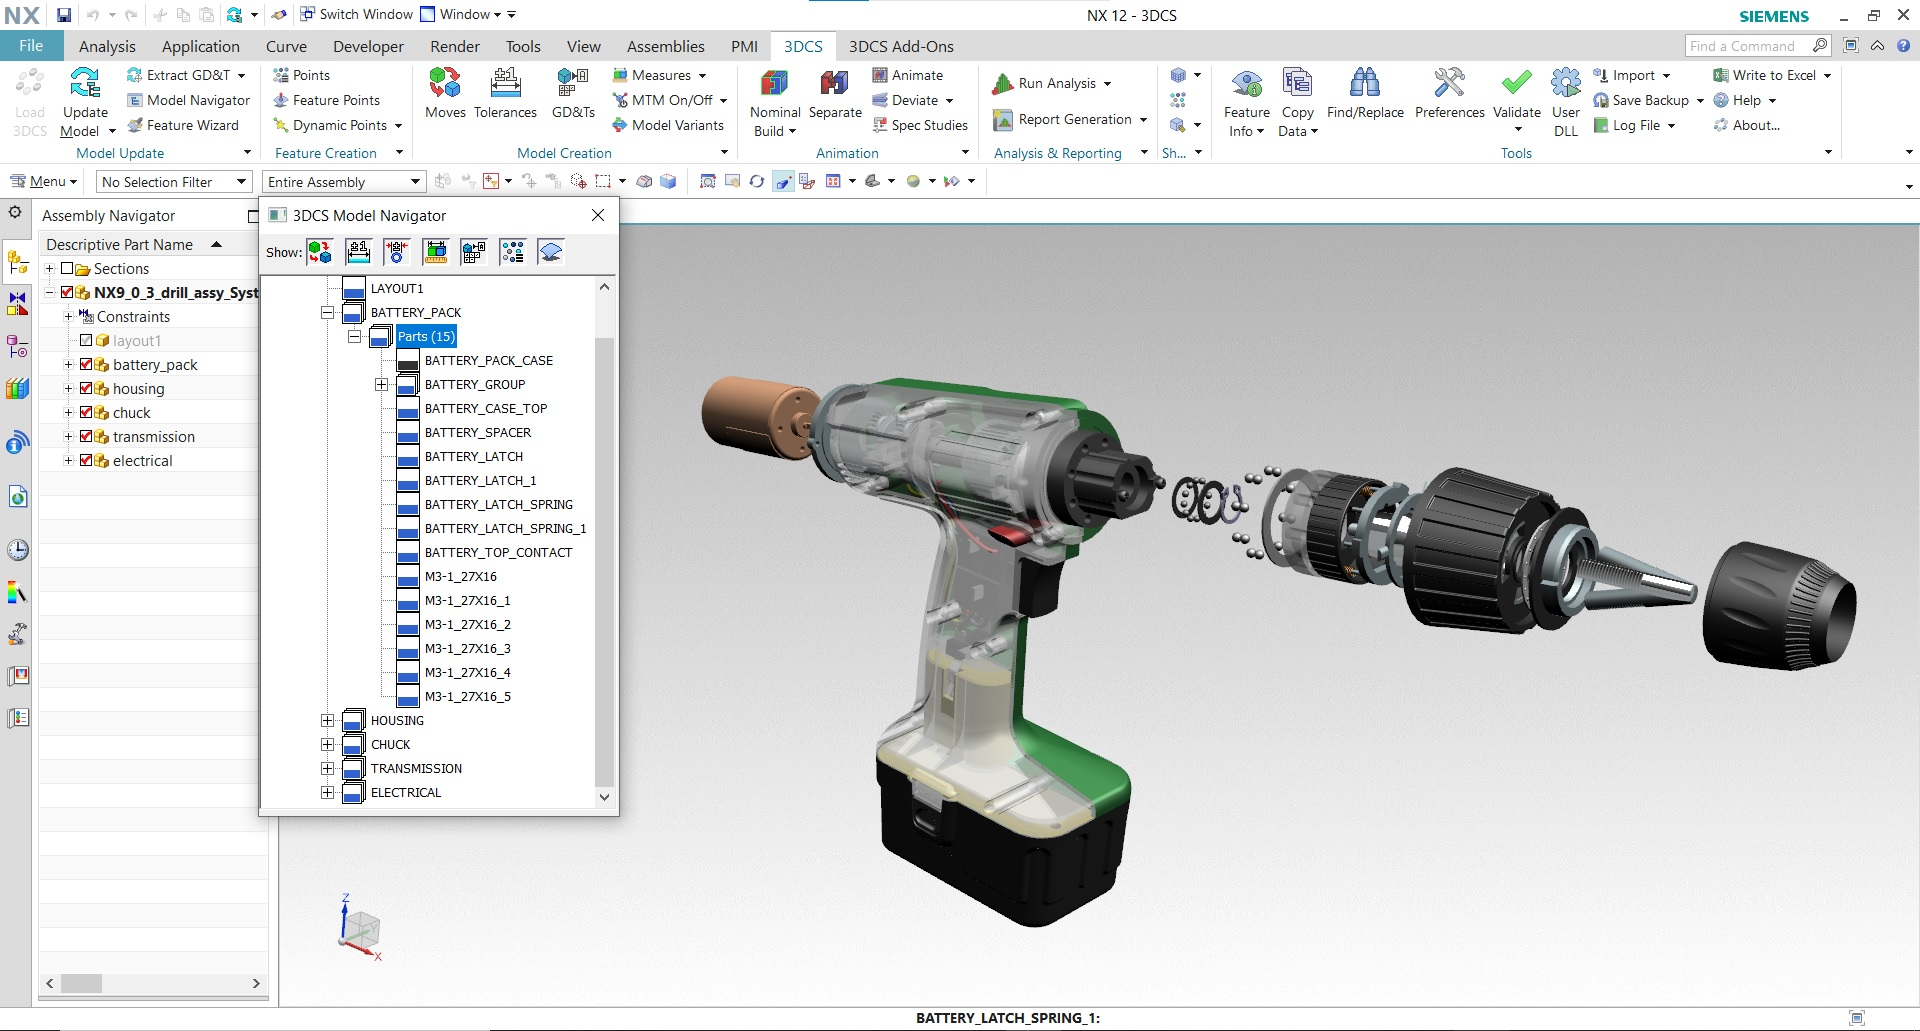 3DCS for NX - Simulate Assembly, Manufacturing Processes, Tolerances